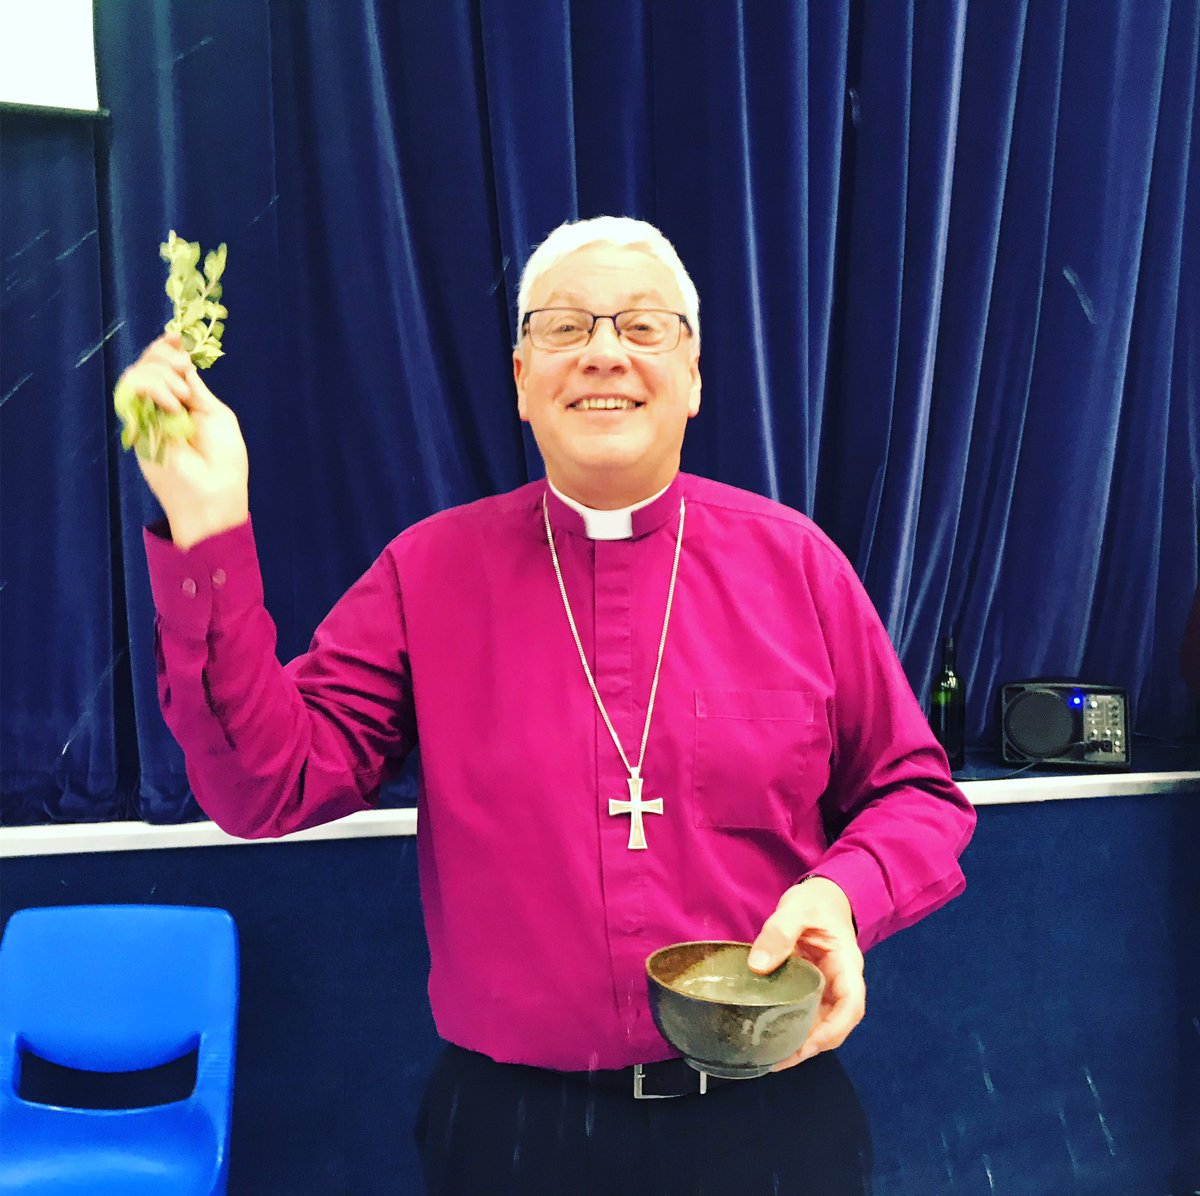 With a first for CNC we welcomed Bishop Robert @bptewkesbury who helped us remember our baptism with #Asperges #GlosDiocese #Bishop #liturgy #sprinkling @GlosDioc